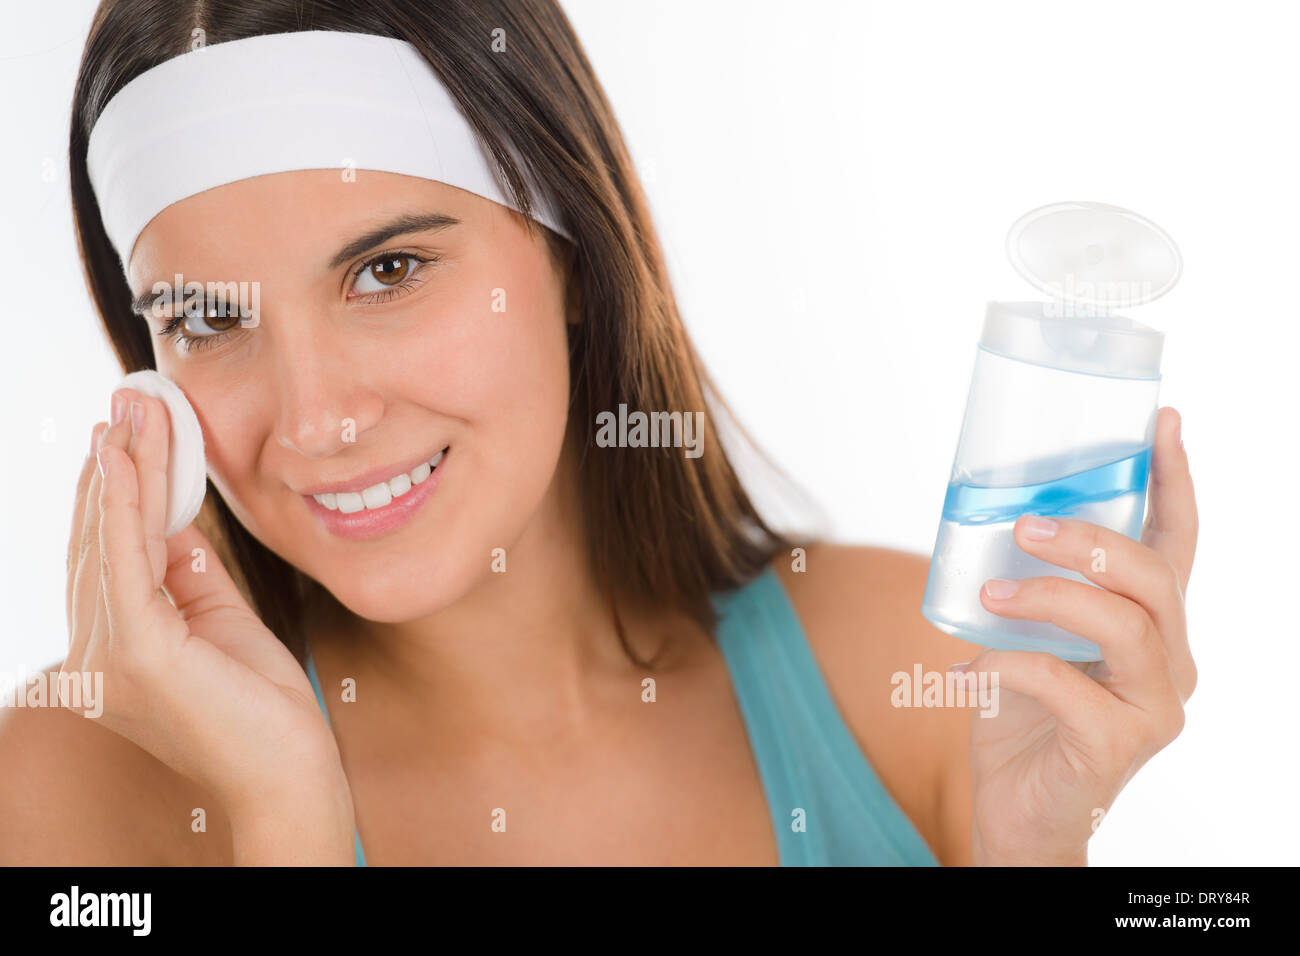 Teenager problem skin care - woman cleanse - Stock Image